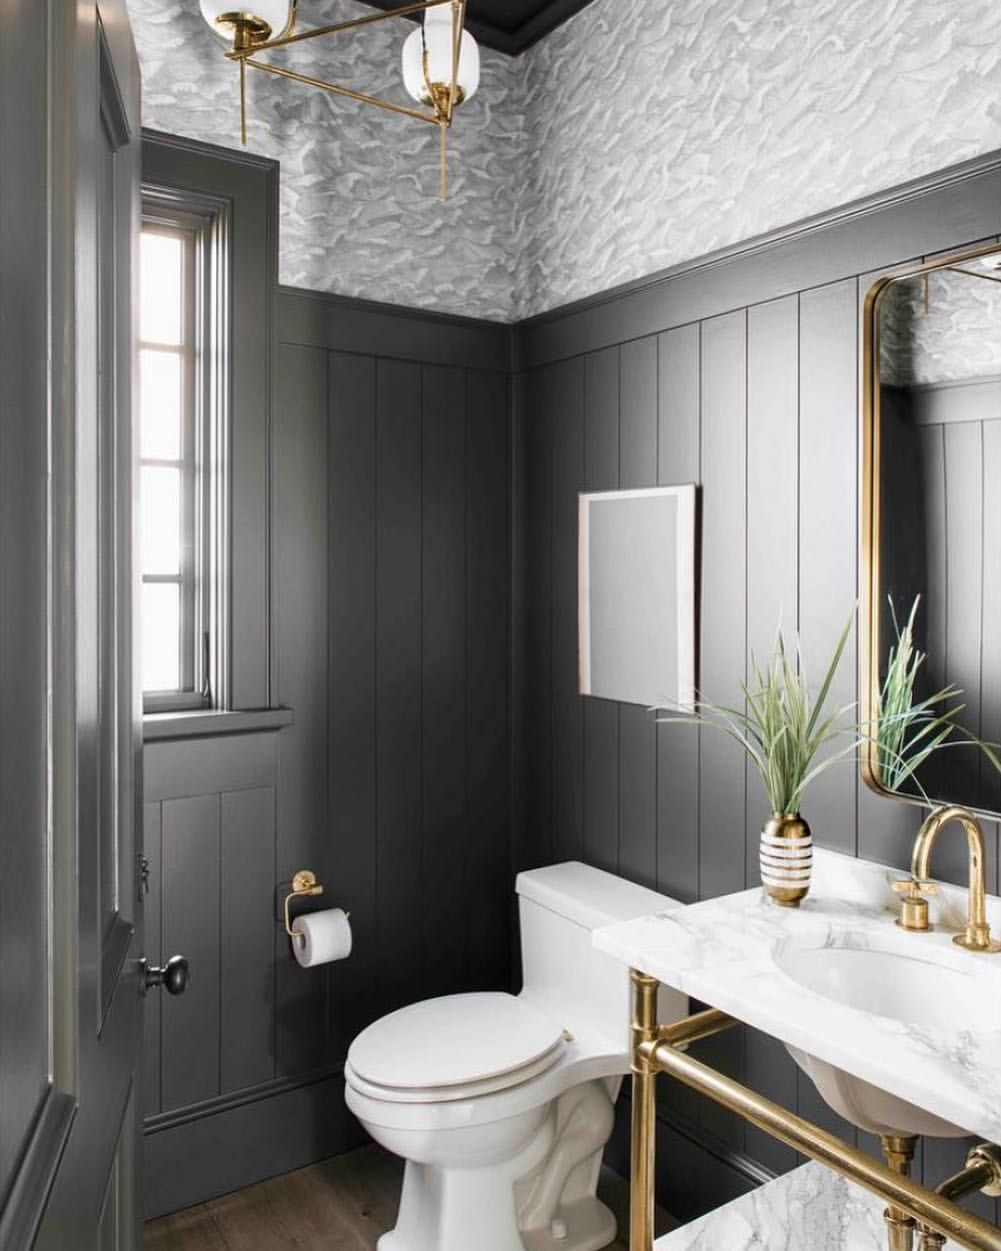 Decadent Powder Room With Wide Vertical Shiplap And Cole